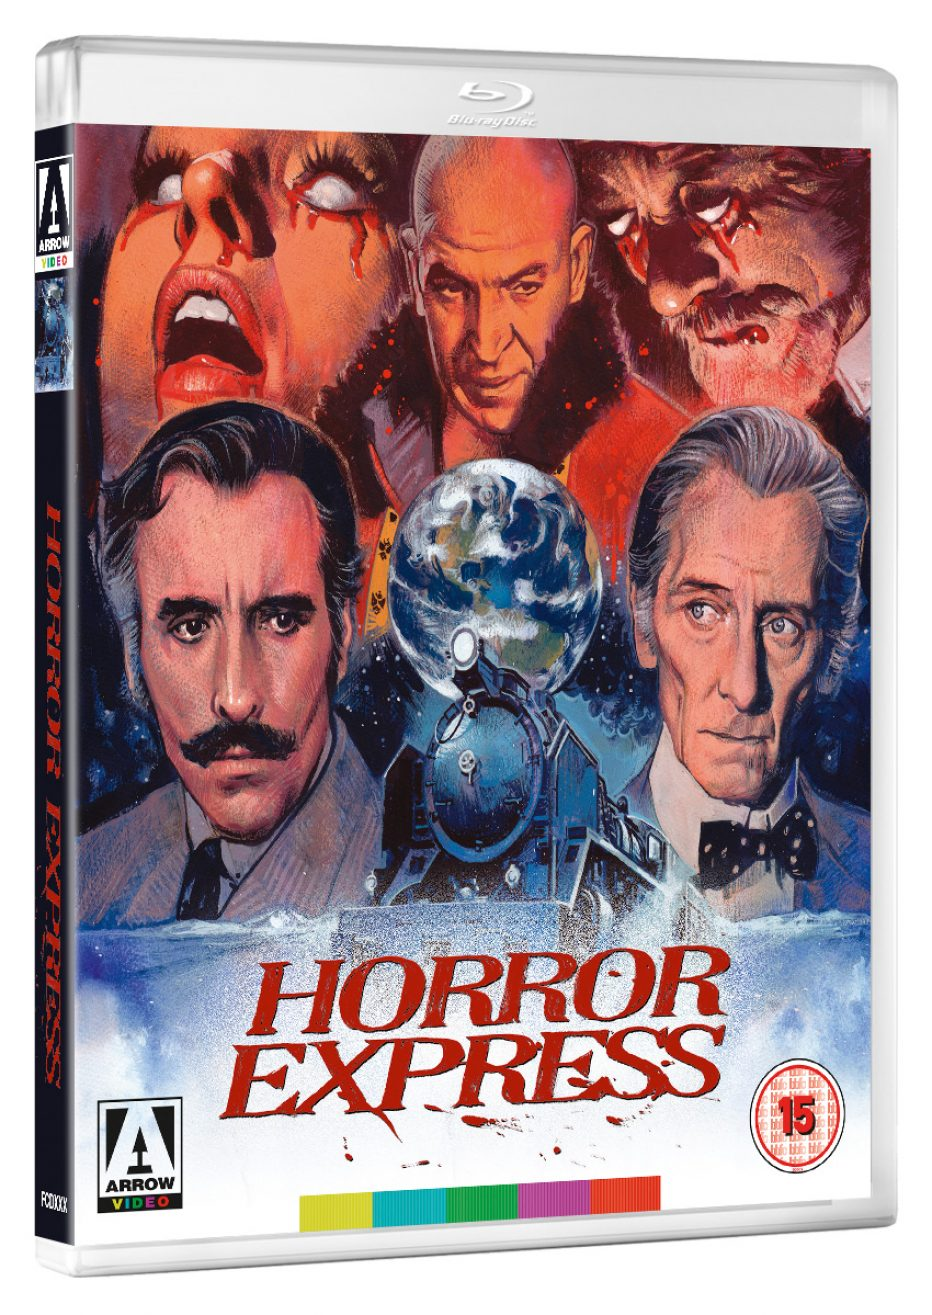 Horror Express on Blu-ray on 11 February 2019